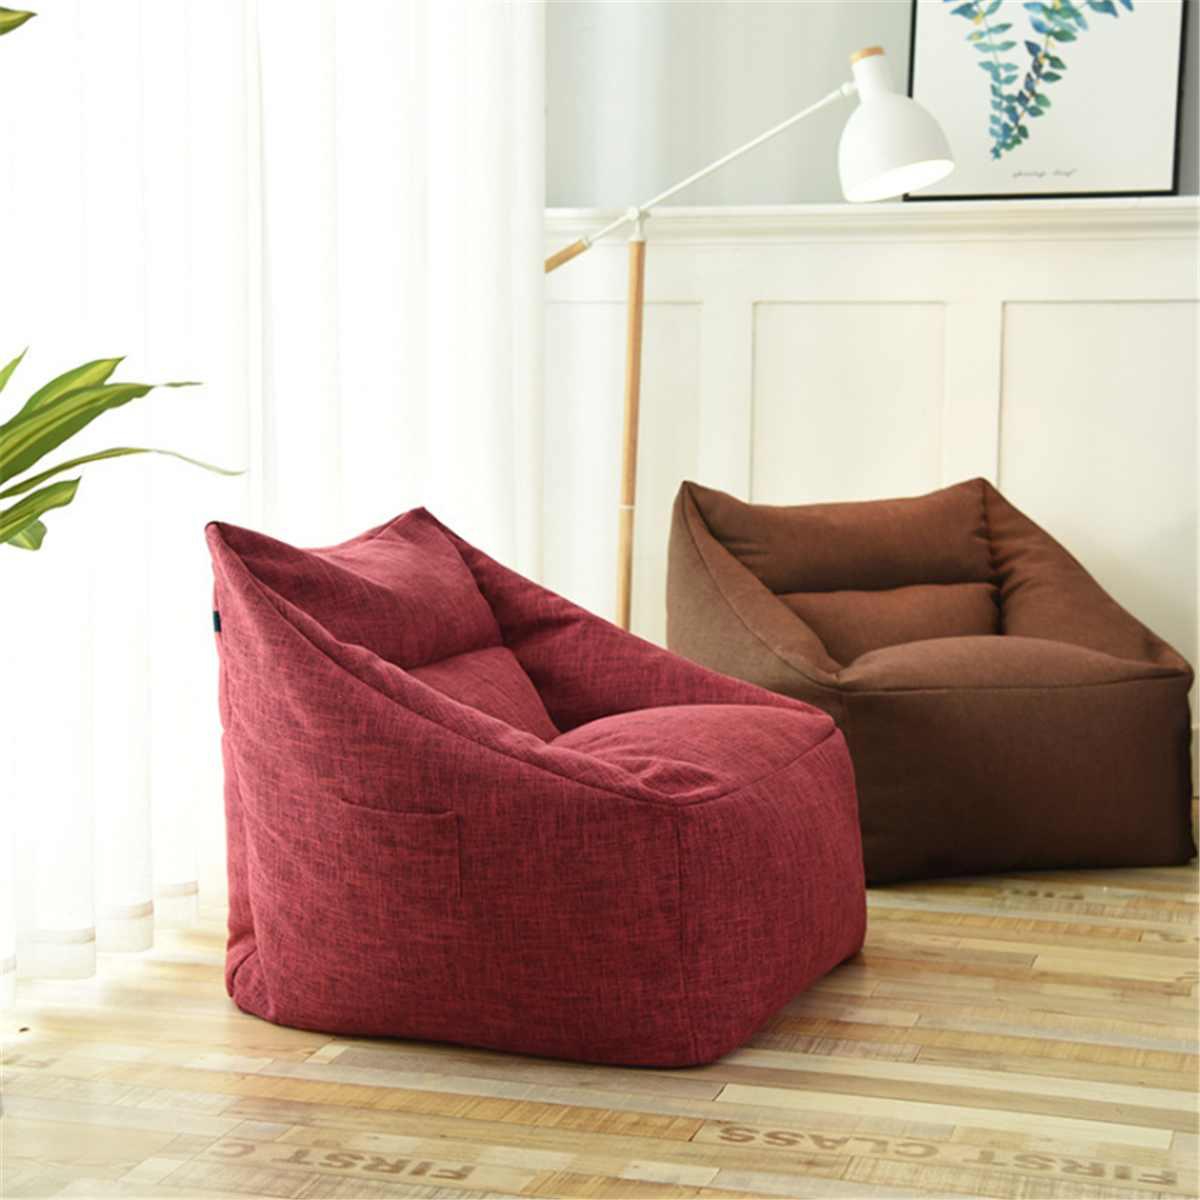 Lazy Sofa Indoor Seat Chair Cover Waterproof Beanbag Chair Lazybag Puff Sofas Large Bean Bag Cover Armchair Washable Cozy Game